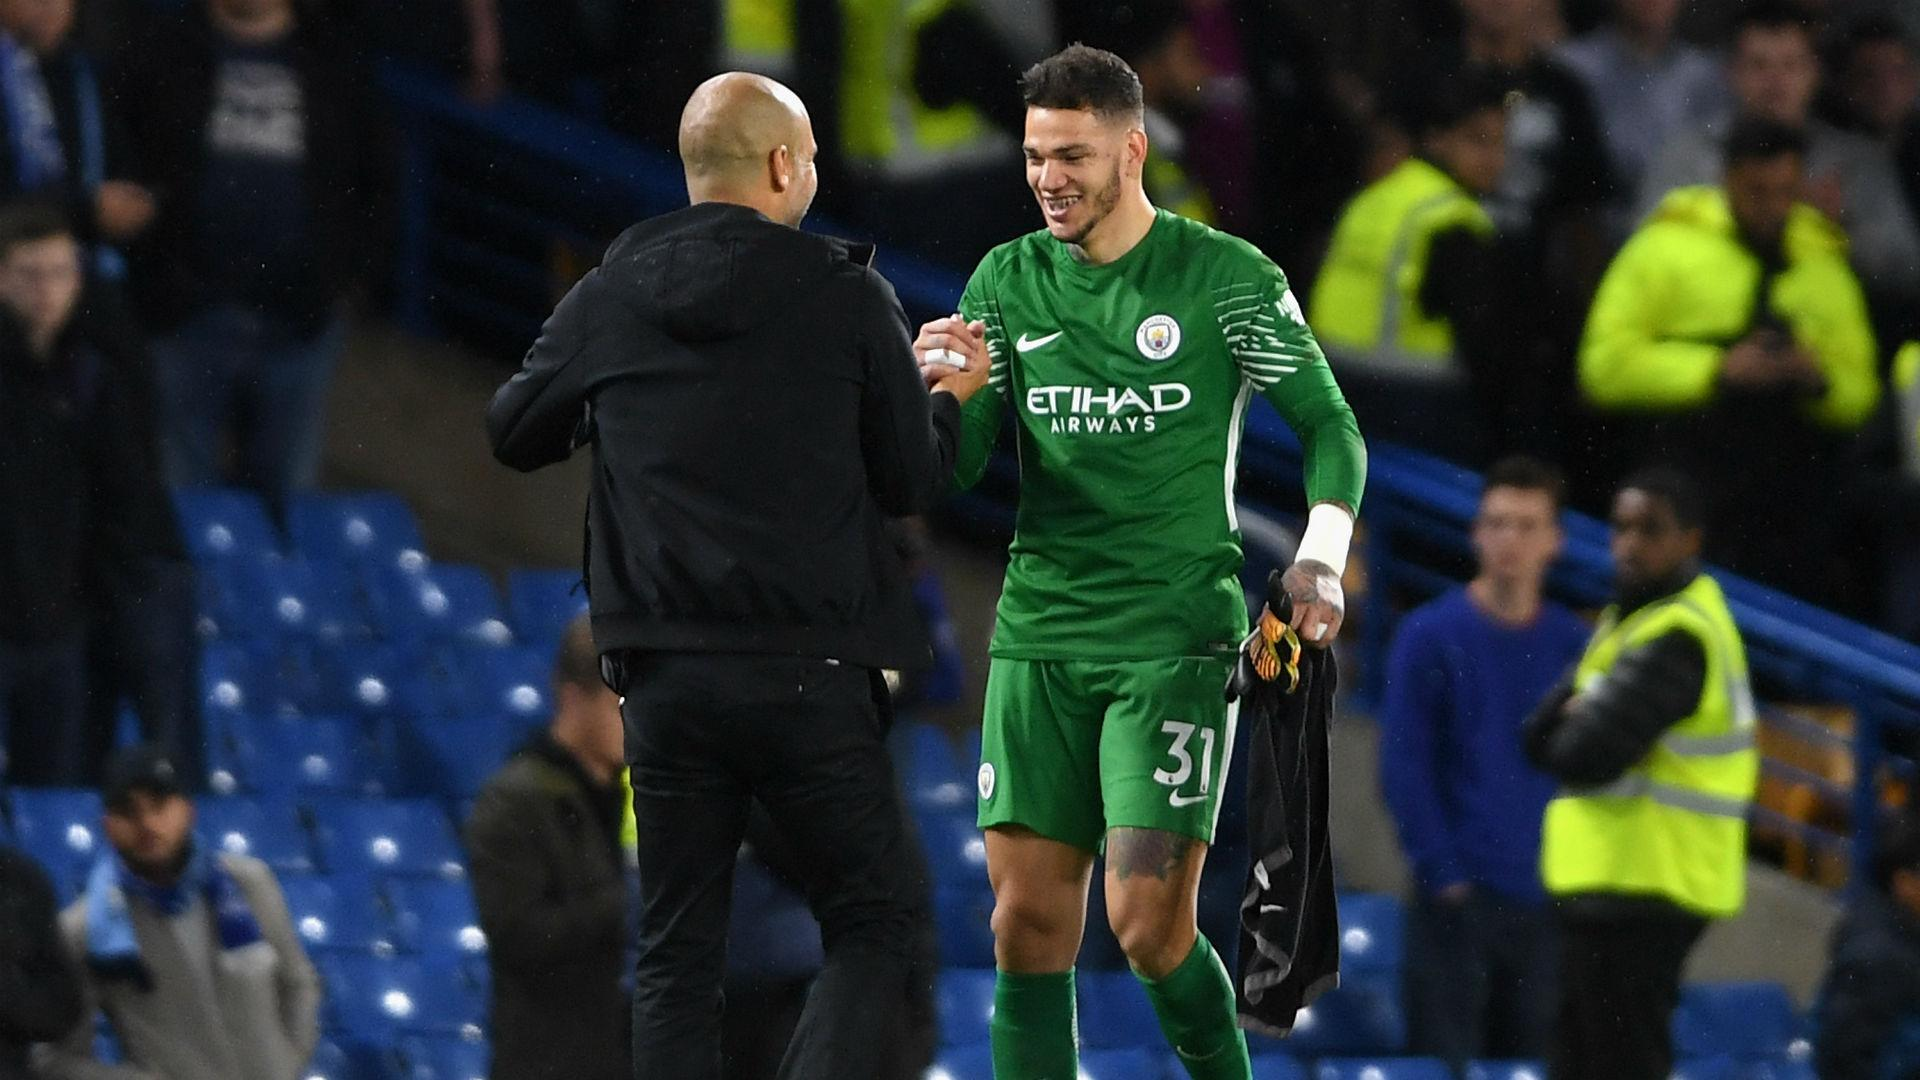 Ederson e Guardiola all'Ethiad Stadium | Numerosette Magazine